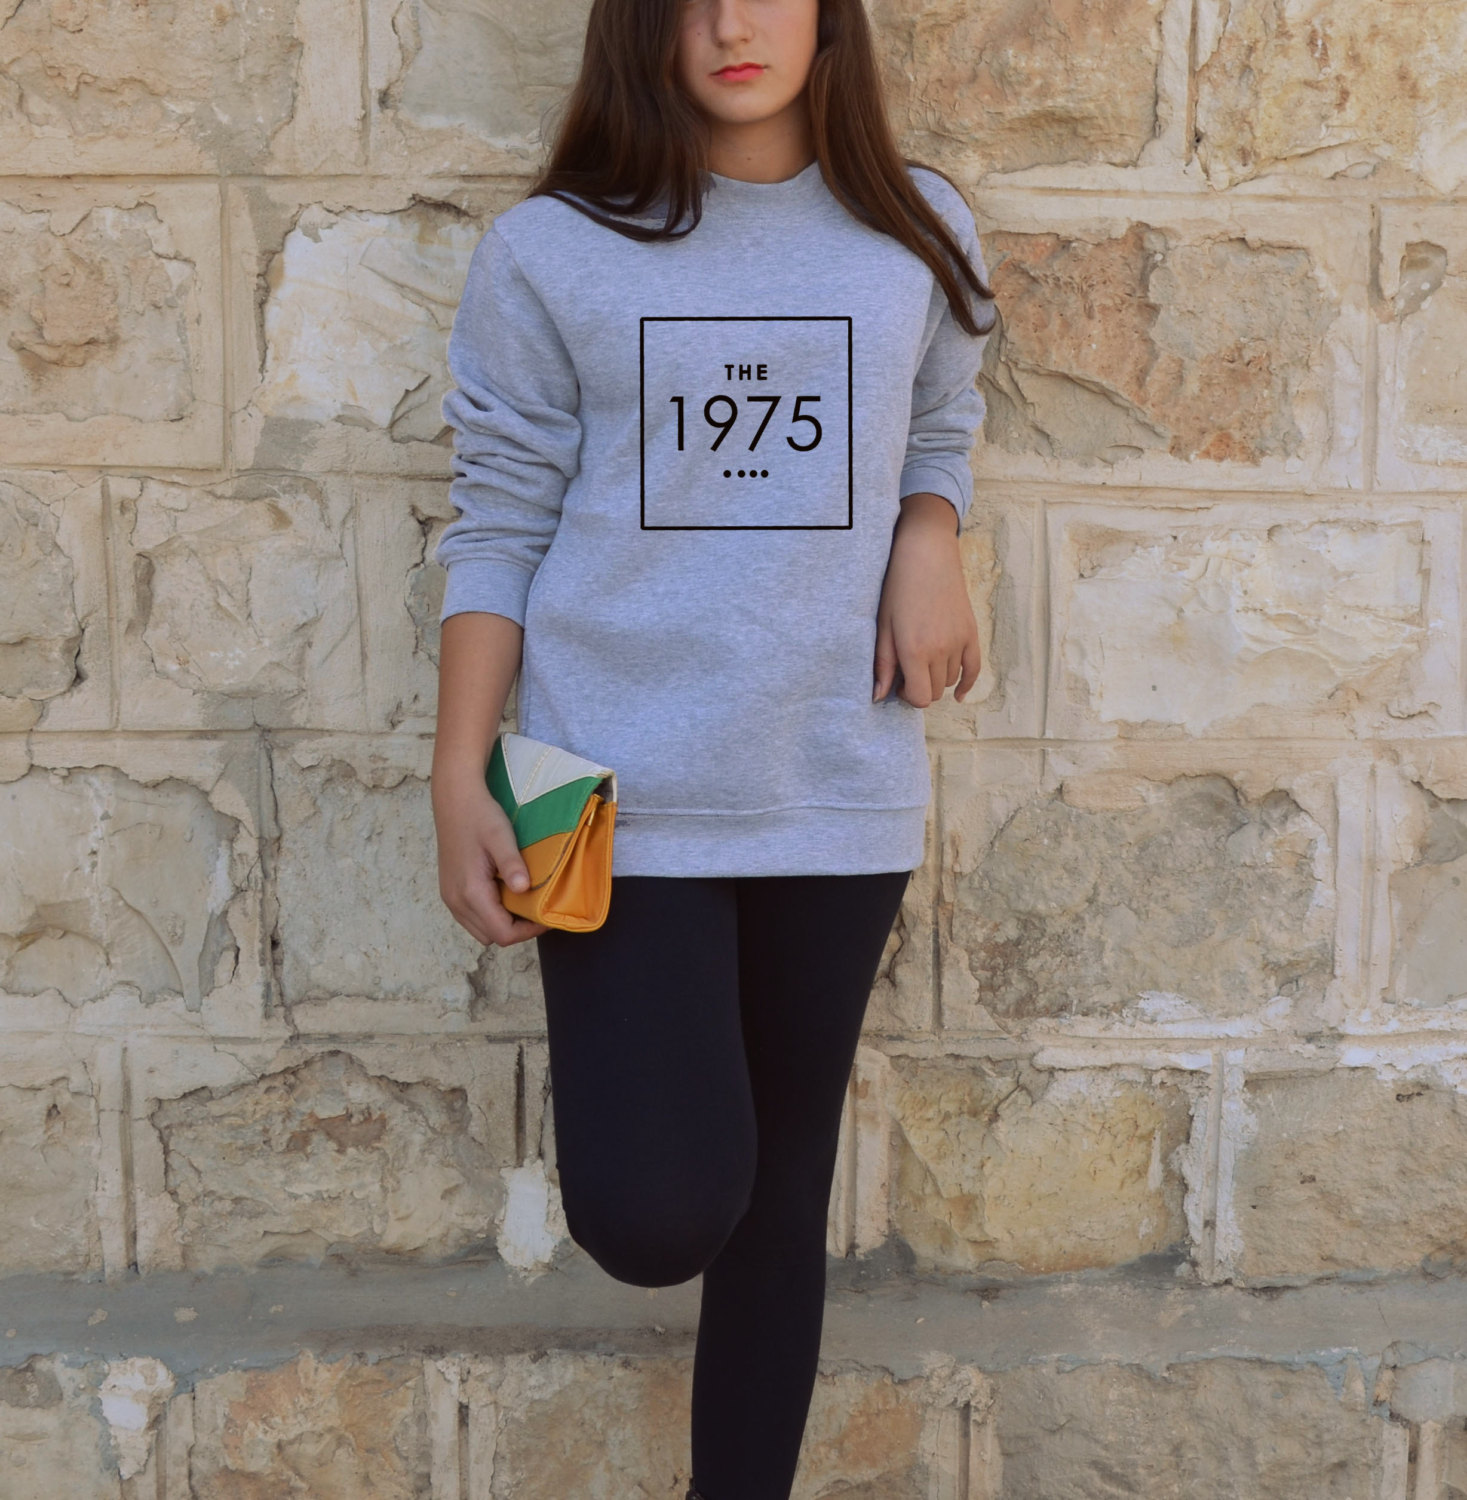 The 1975 sweatshirt in white or gray unisex jumper indie rock hipster the 1975 band sweater matt healy fans